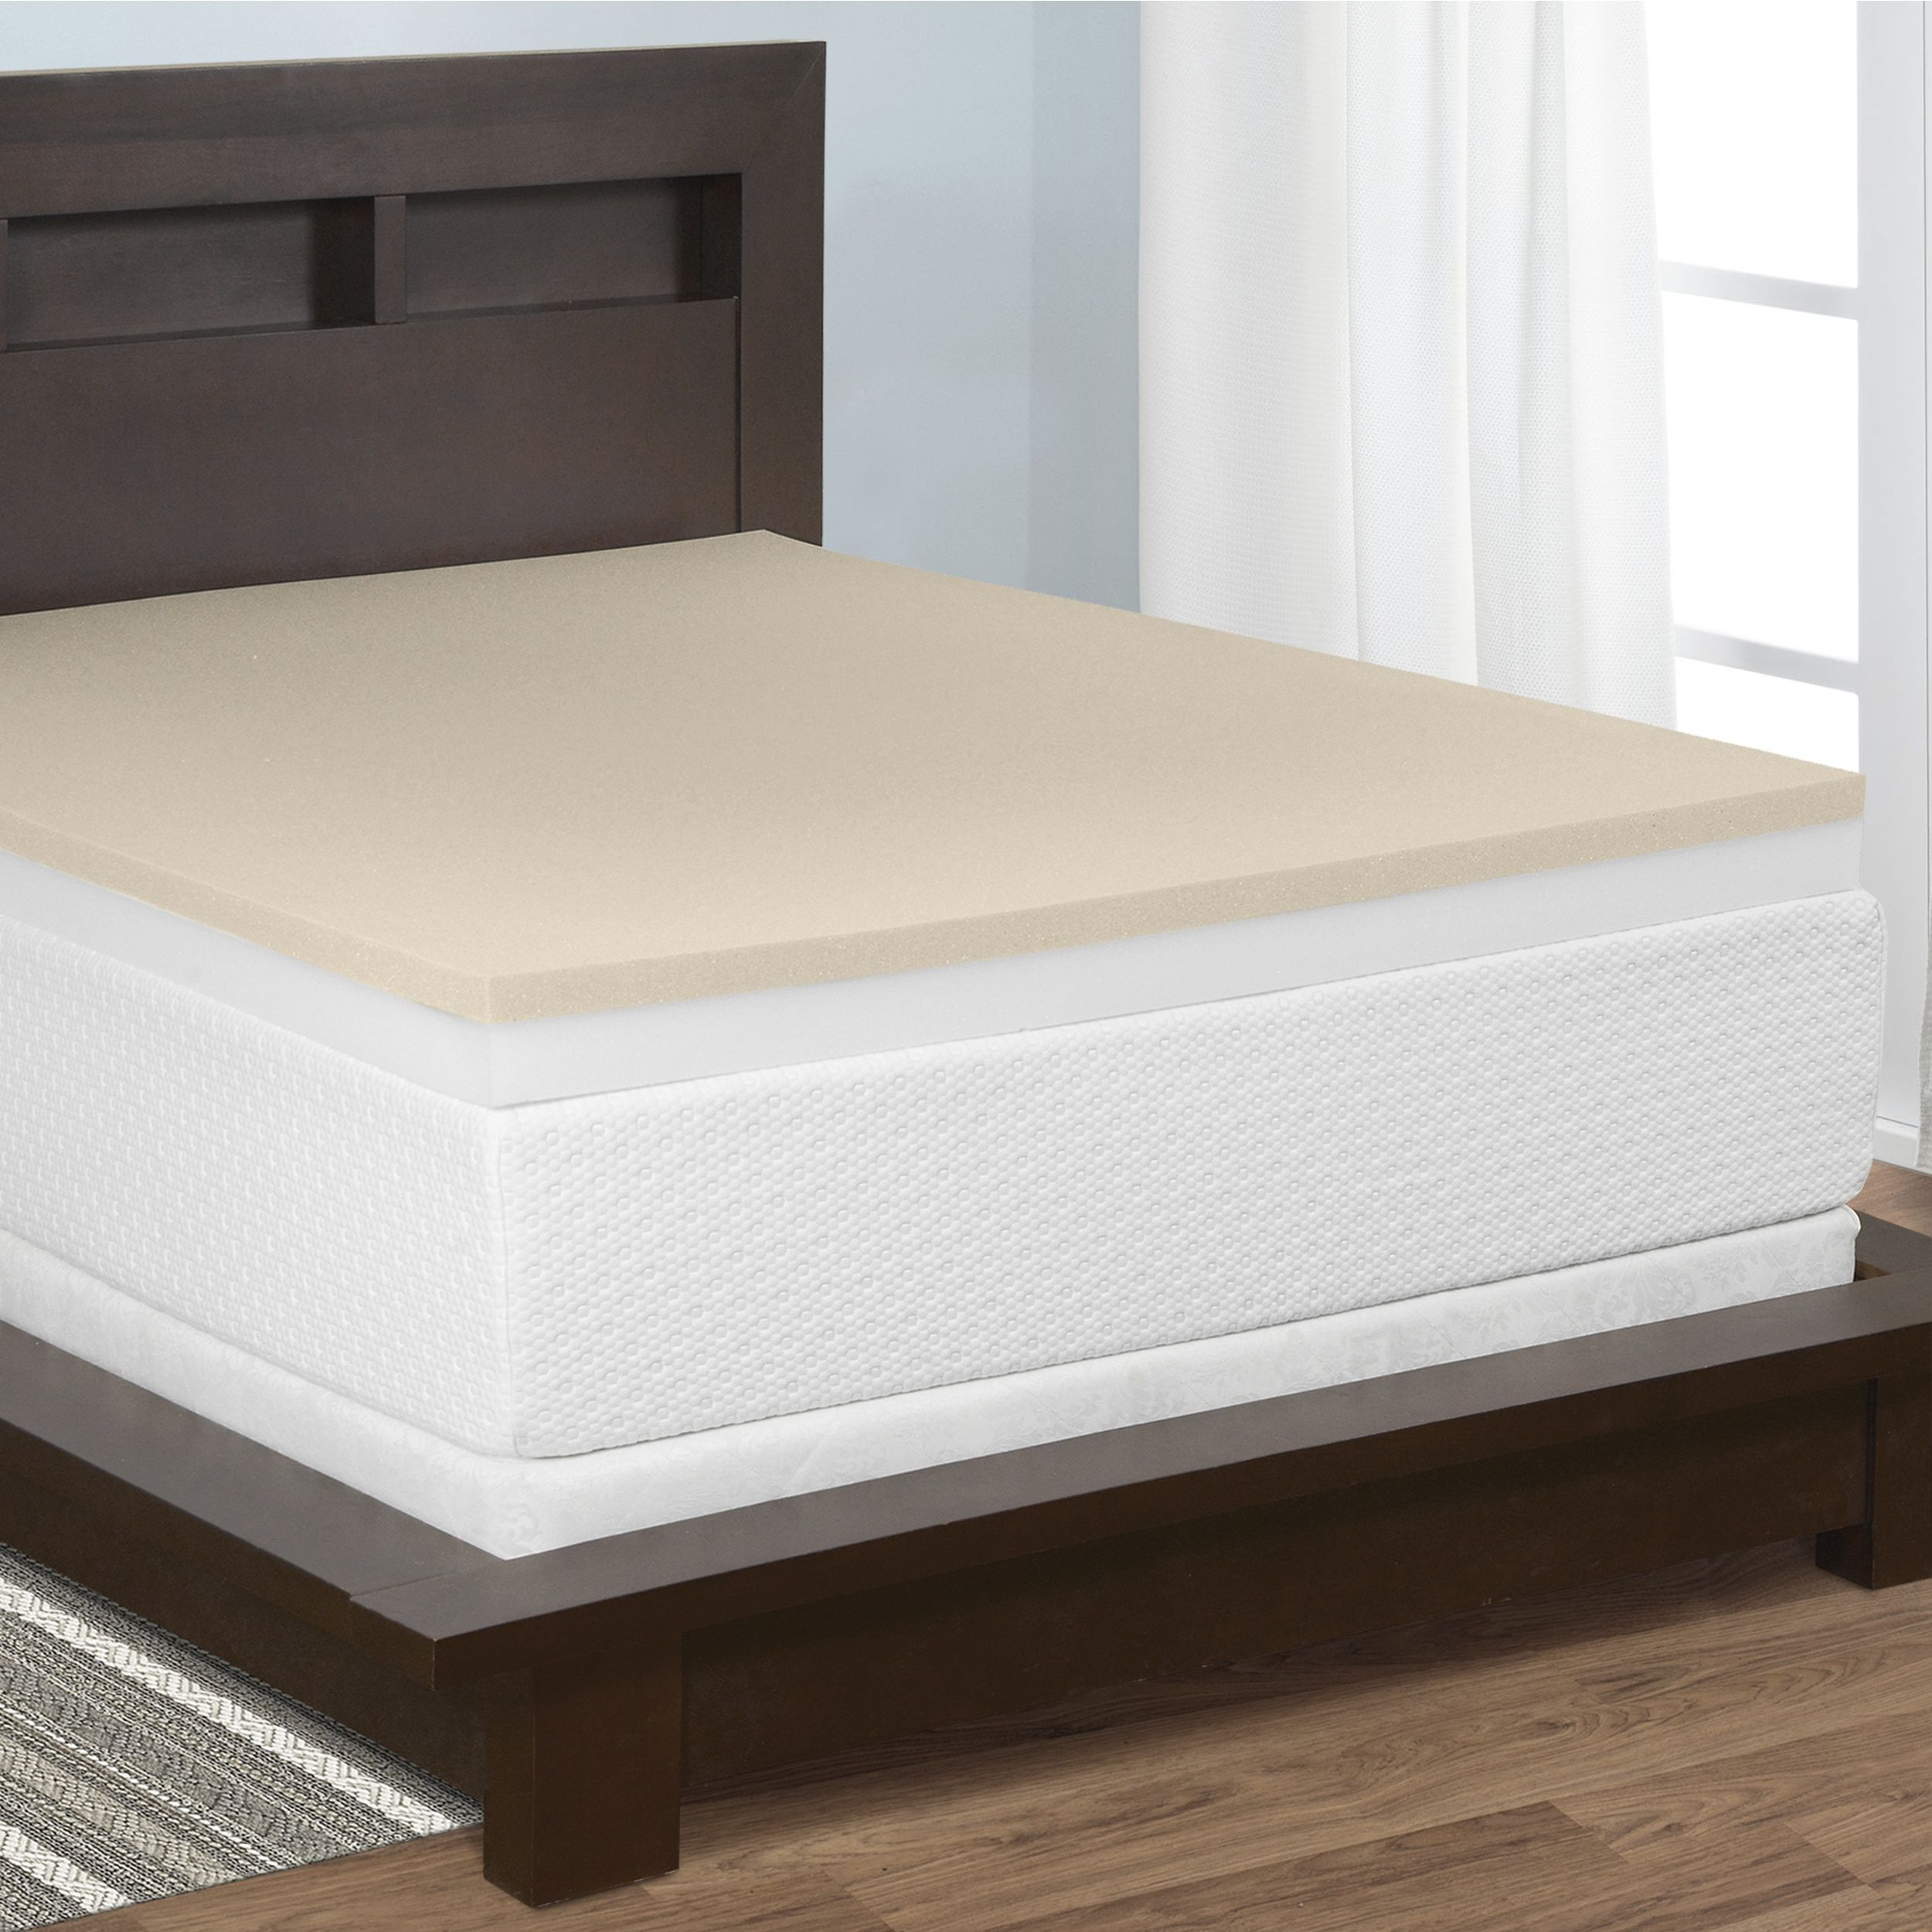 beds cool mattress awesome feather beautyrest of beautiful and touch pure foam arctic memory convoluted serta by sleep post topper rest visco fort related inch pads ultimate